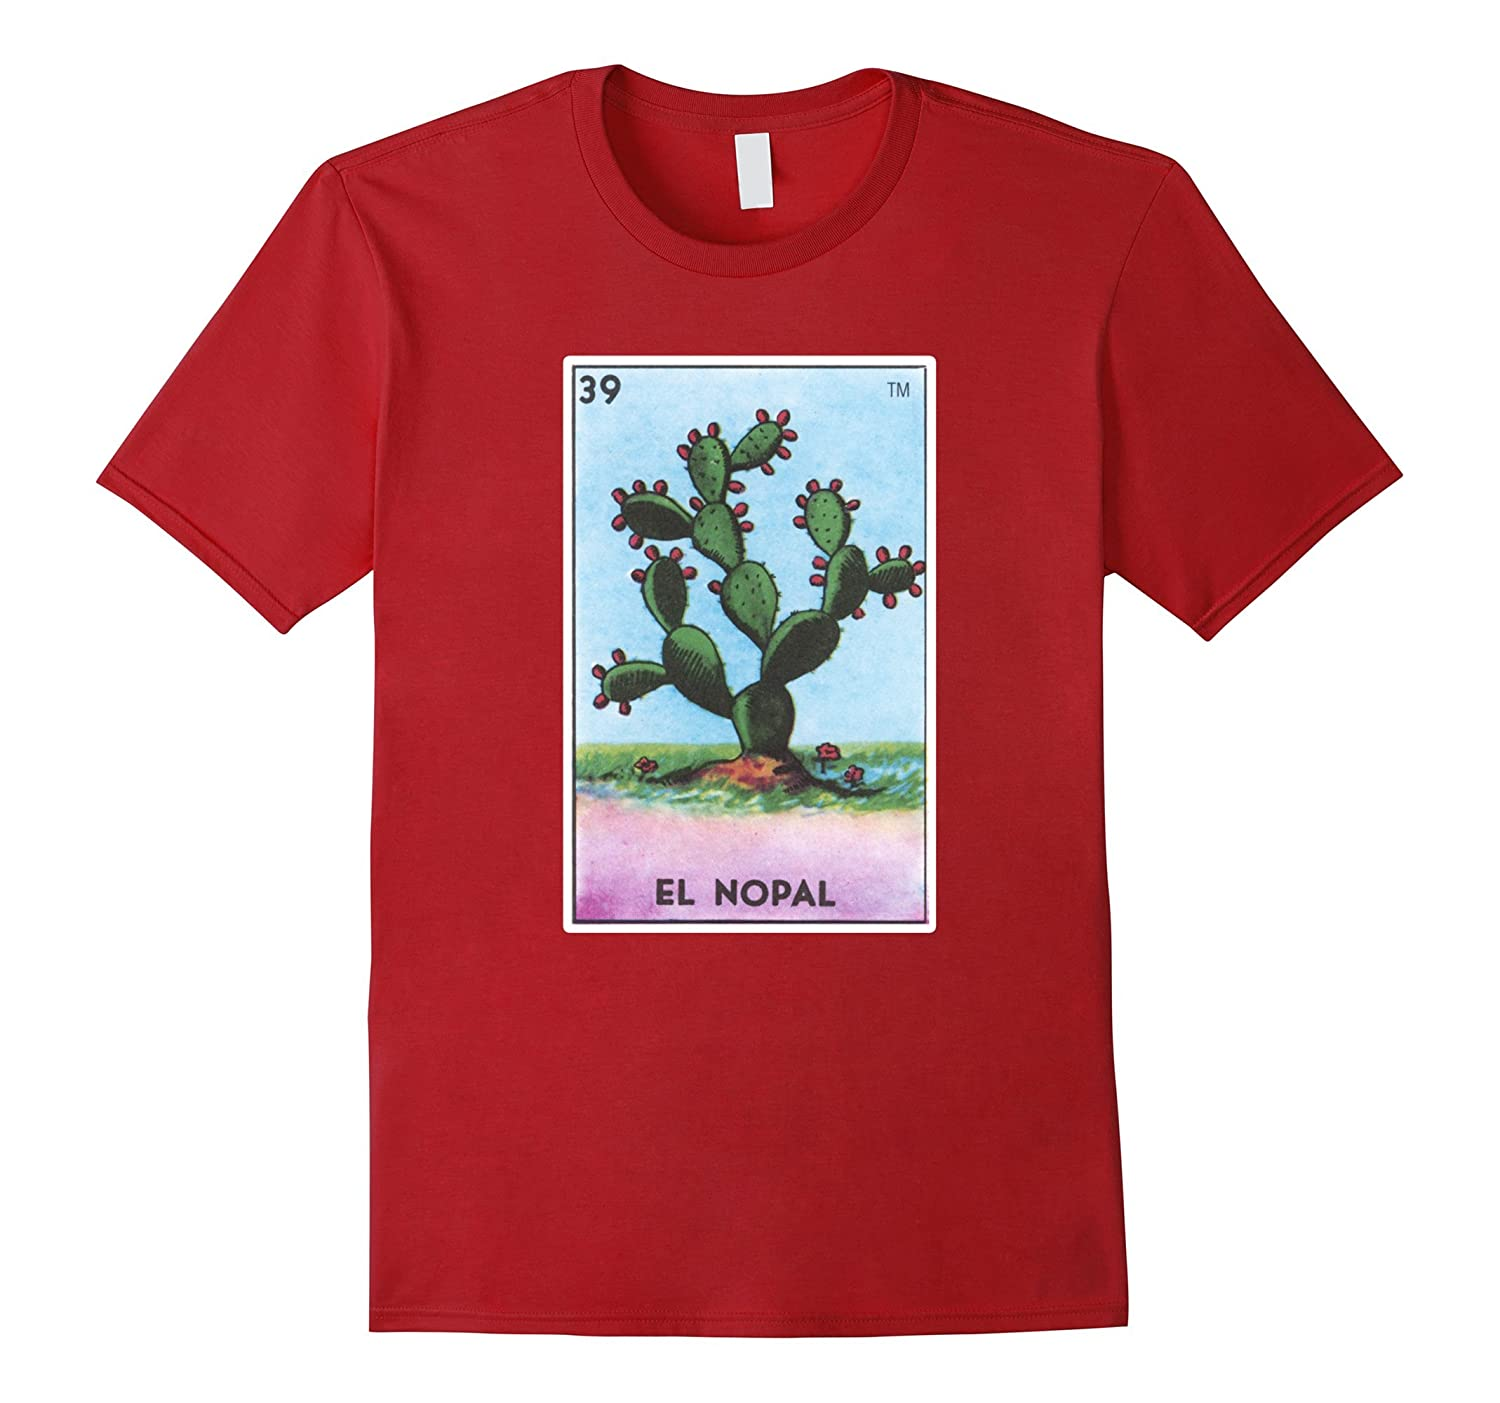 102b63f77 El Nopal Card T-Shirt Prickly Pear Cactus Loteria Tarot-T-Shirt ...